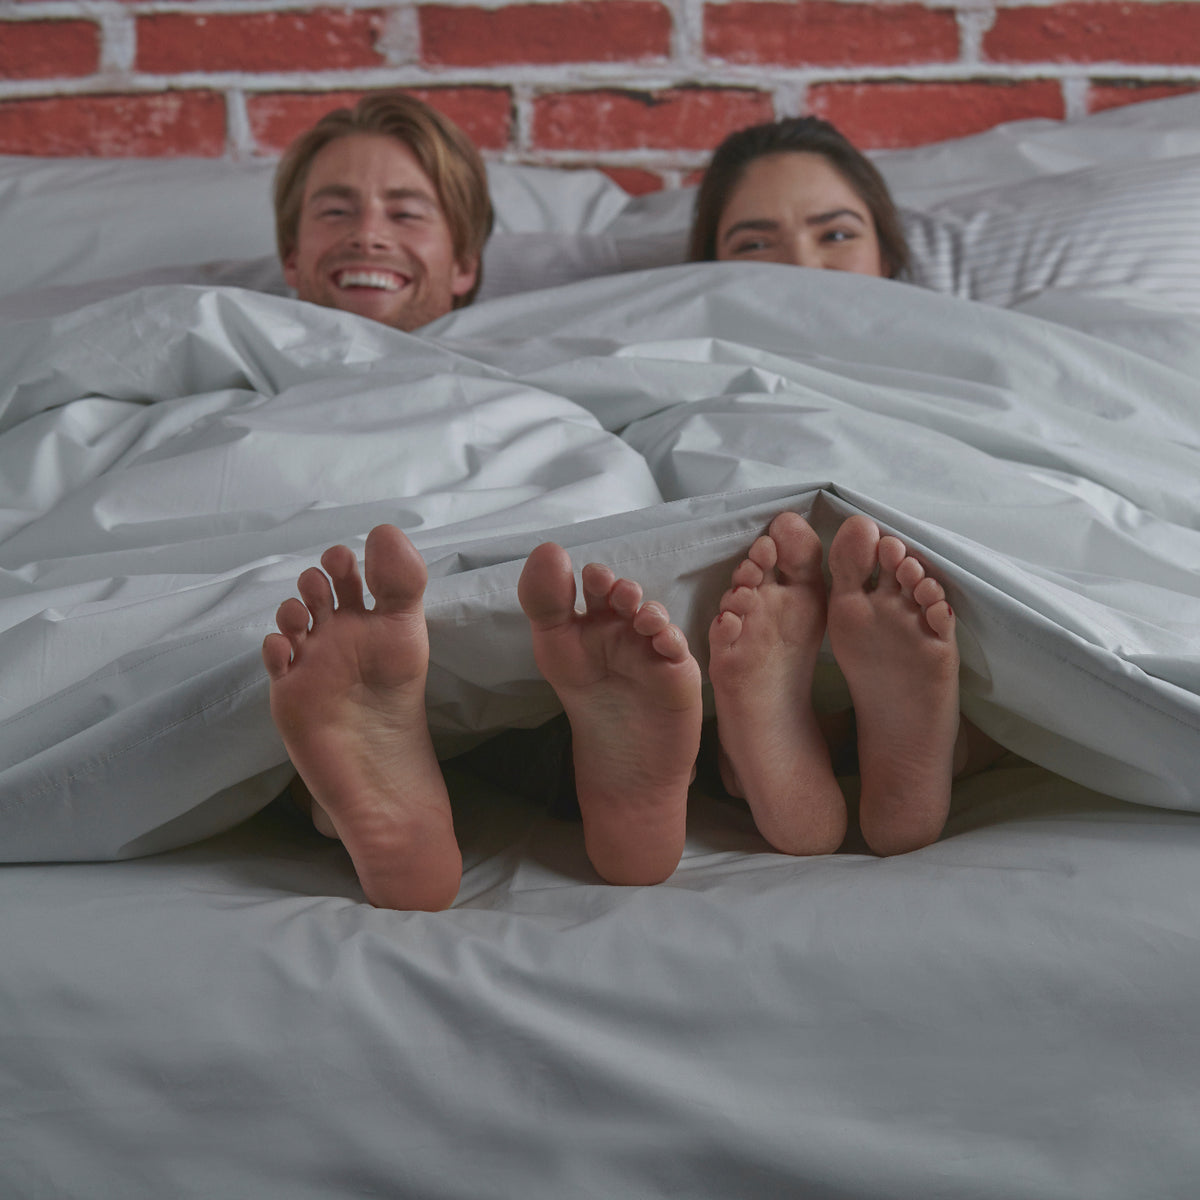 Couple Under Covers with Feet Showing